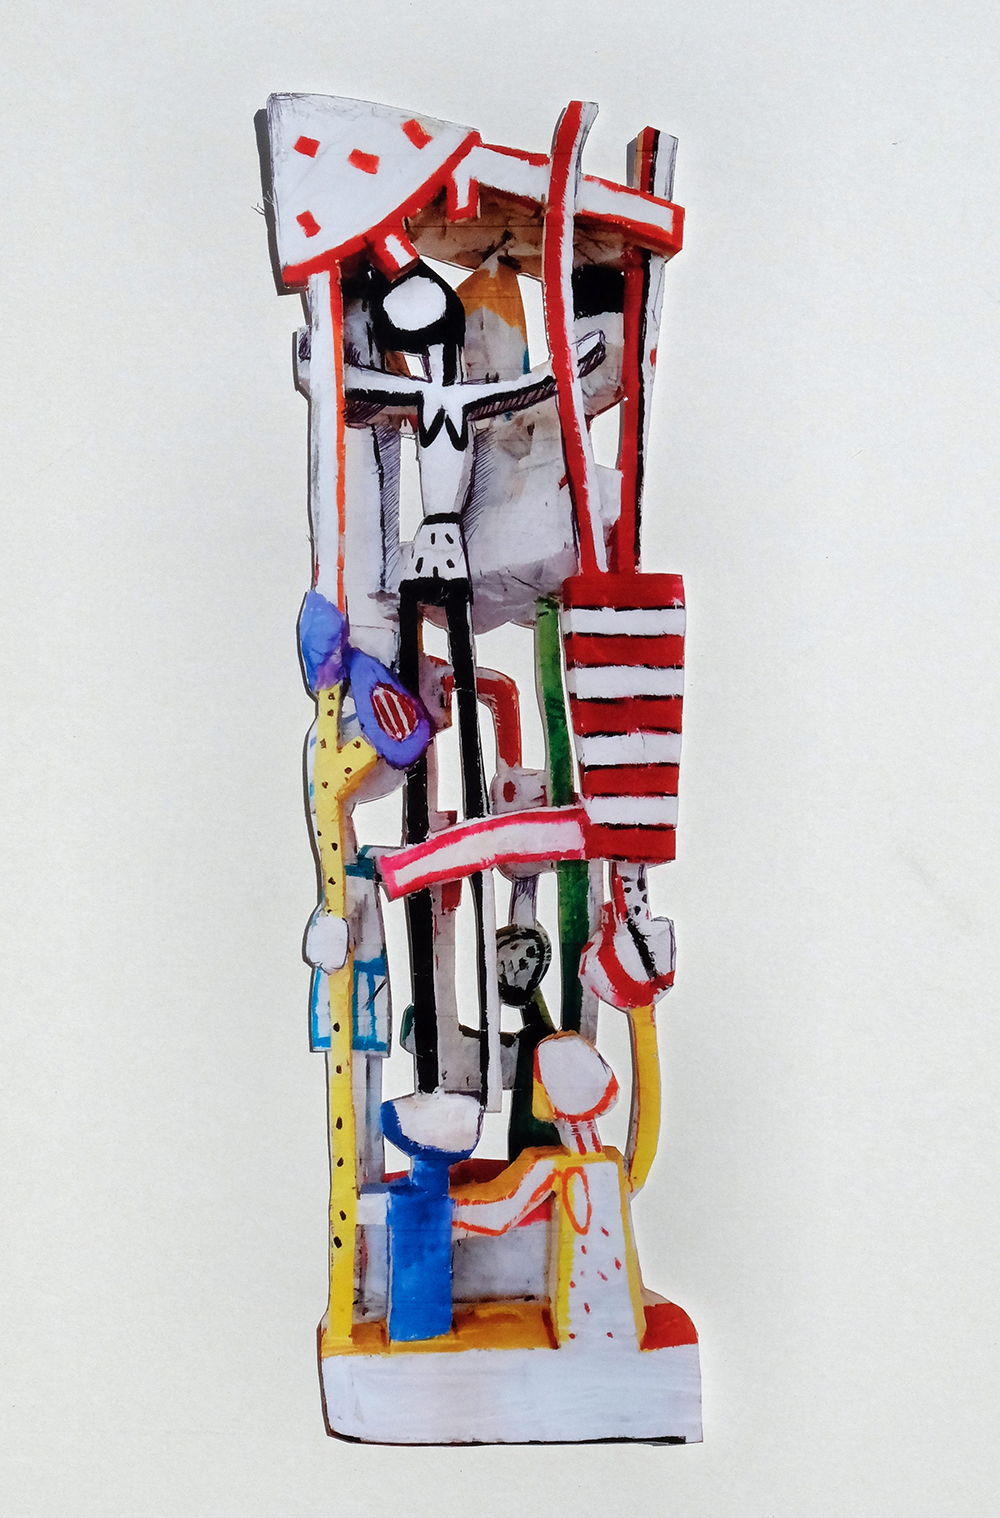 Terence Carr, Stop the World I want to Get Off, 2016, Holz, farbig gefasst,  220 cm x 60 cm x 50 cm, Preis auf Anfrage